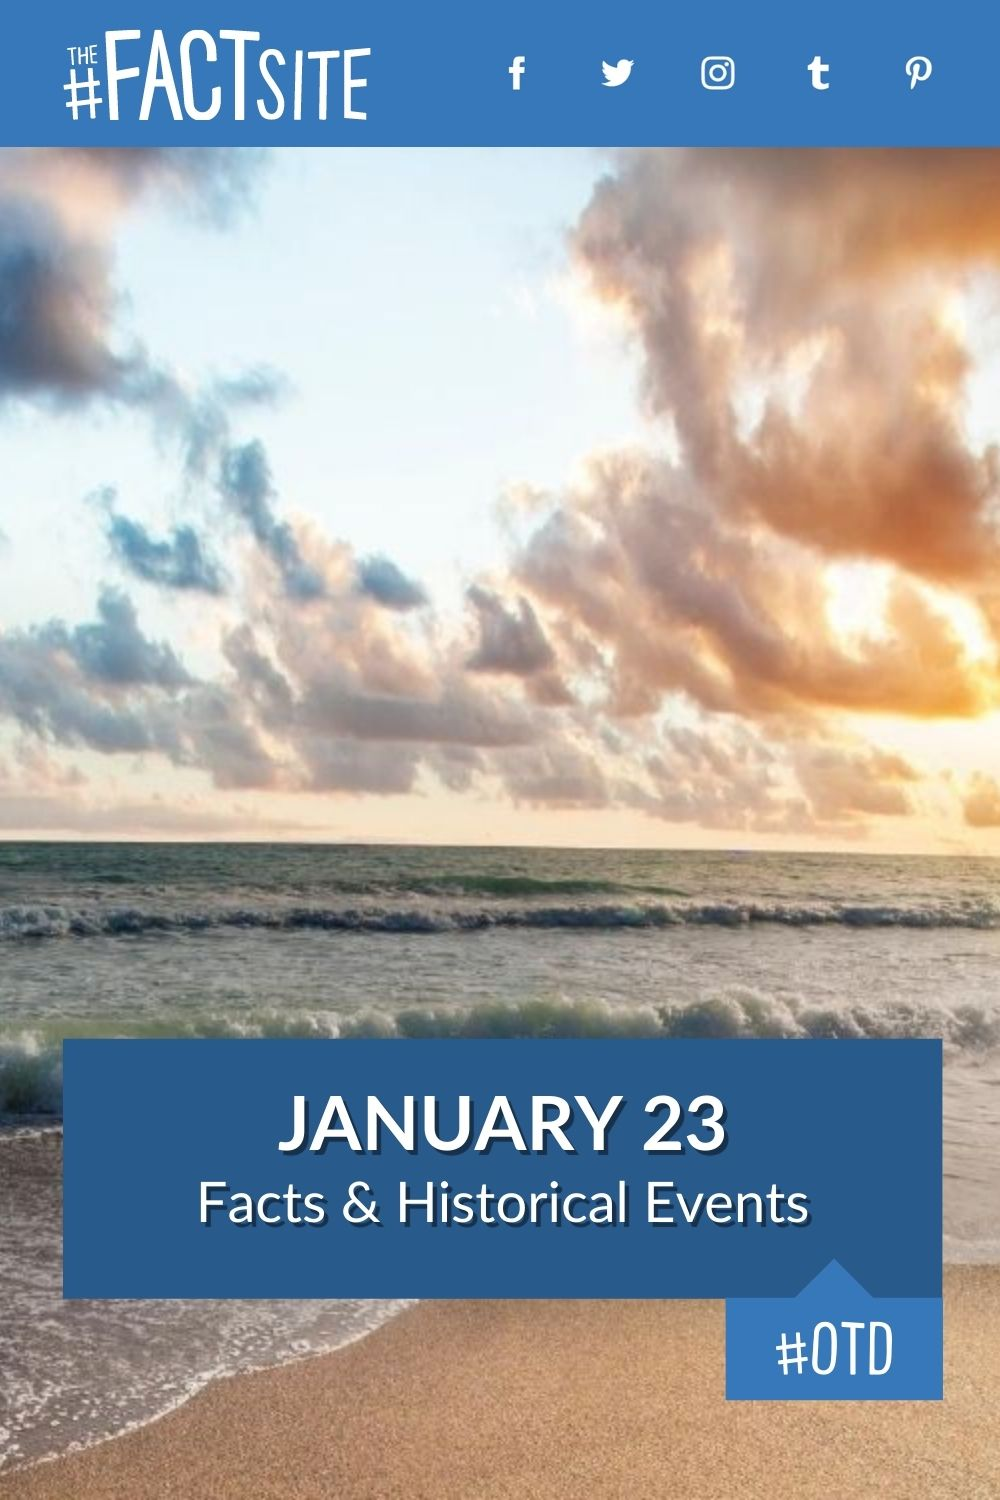 Facts & Historic Events That Happened on January 23